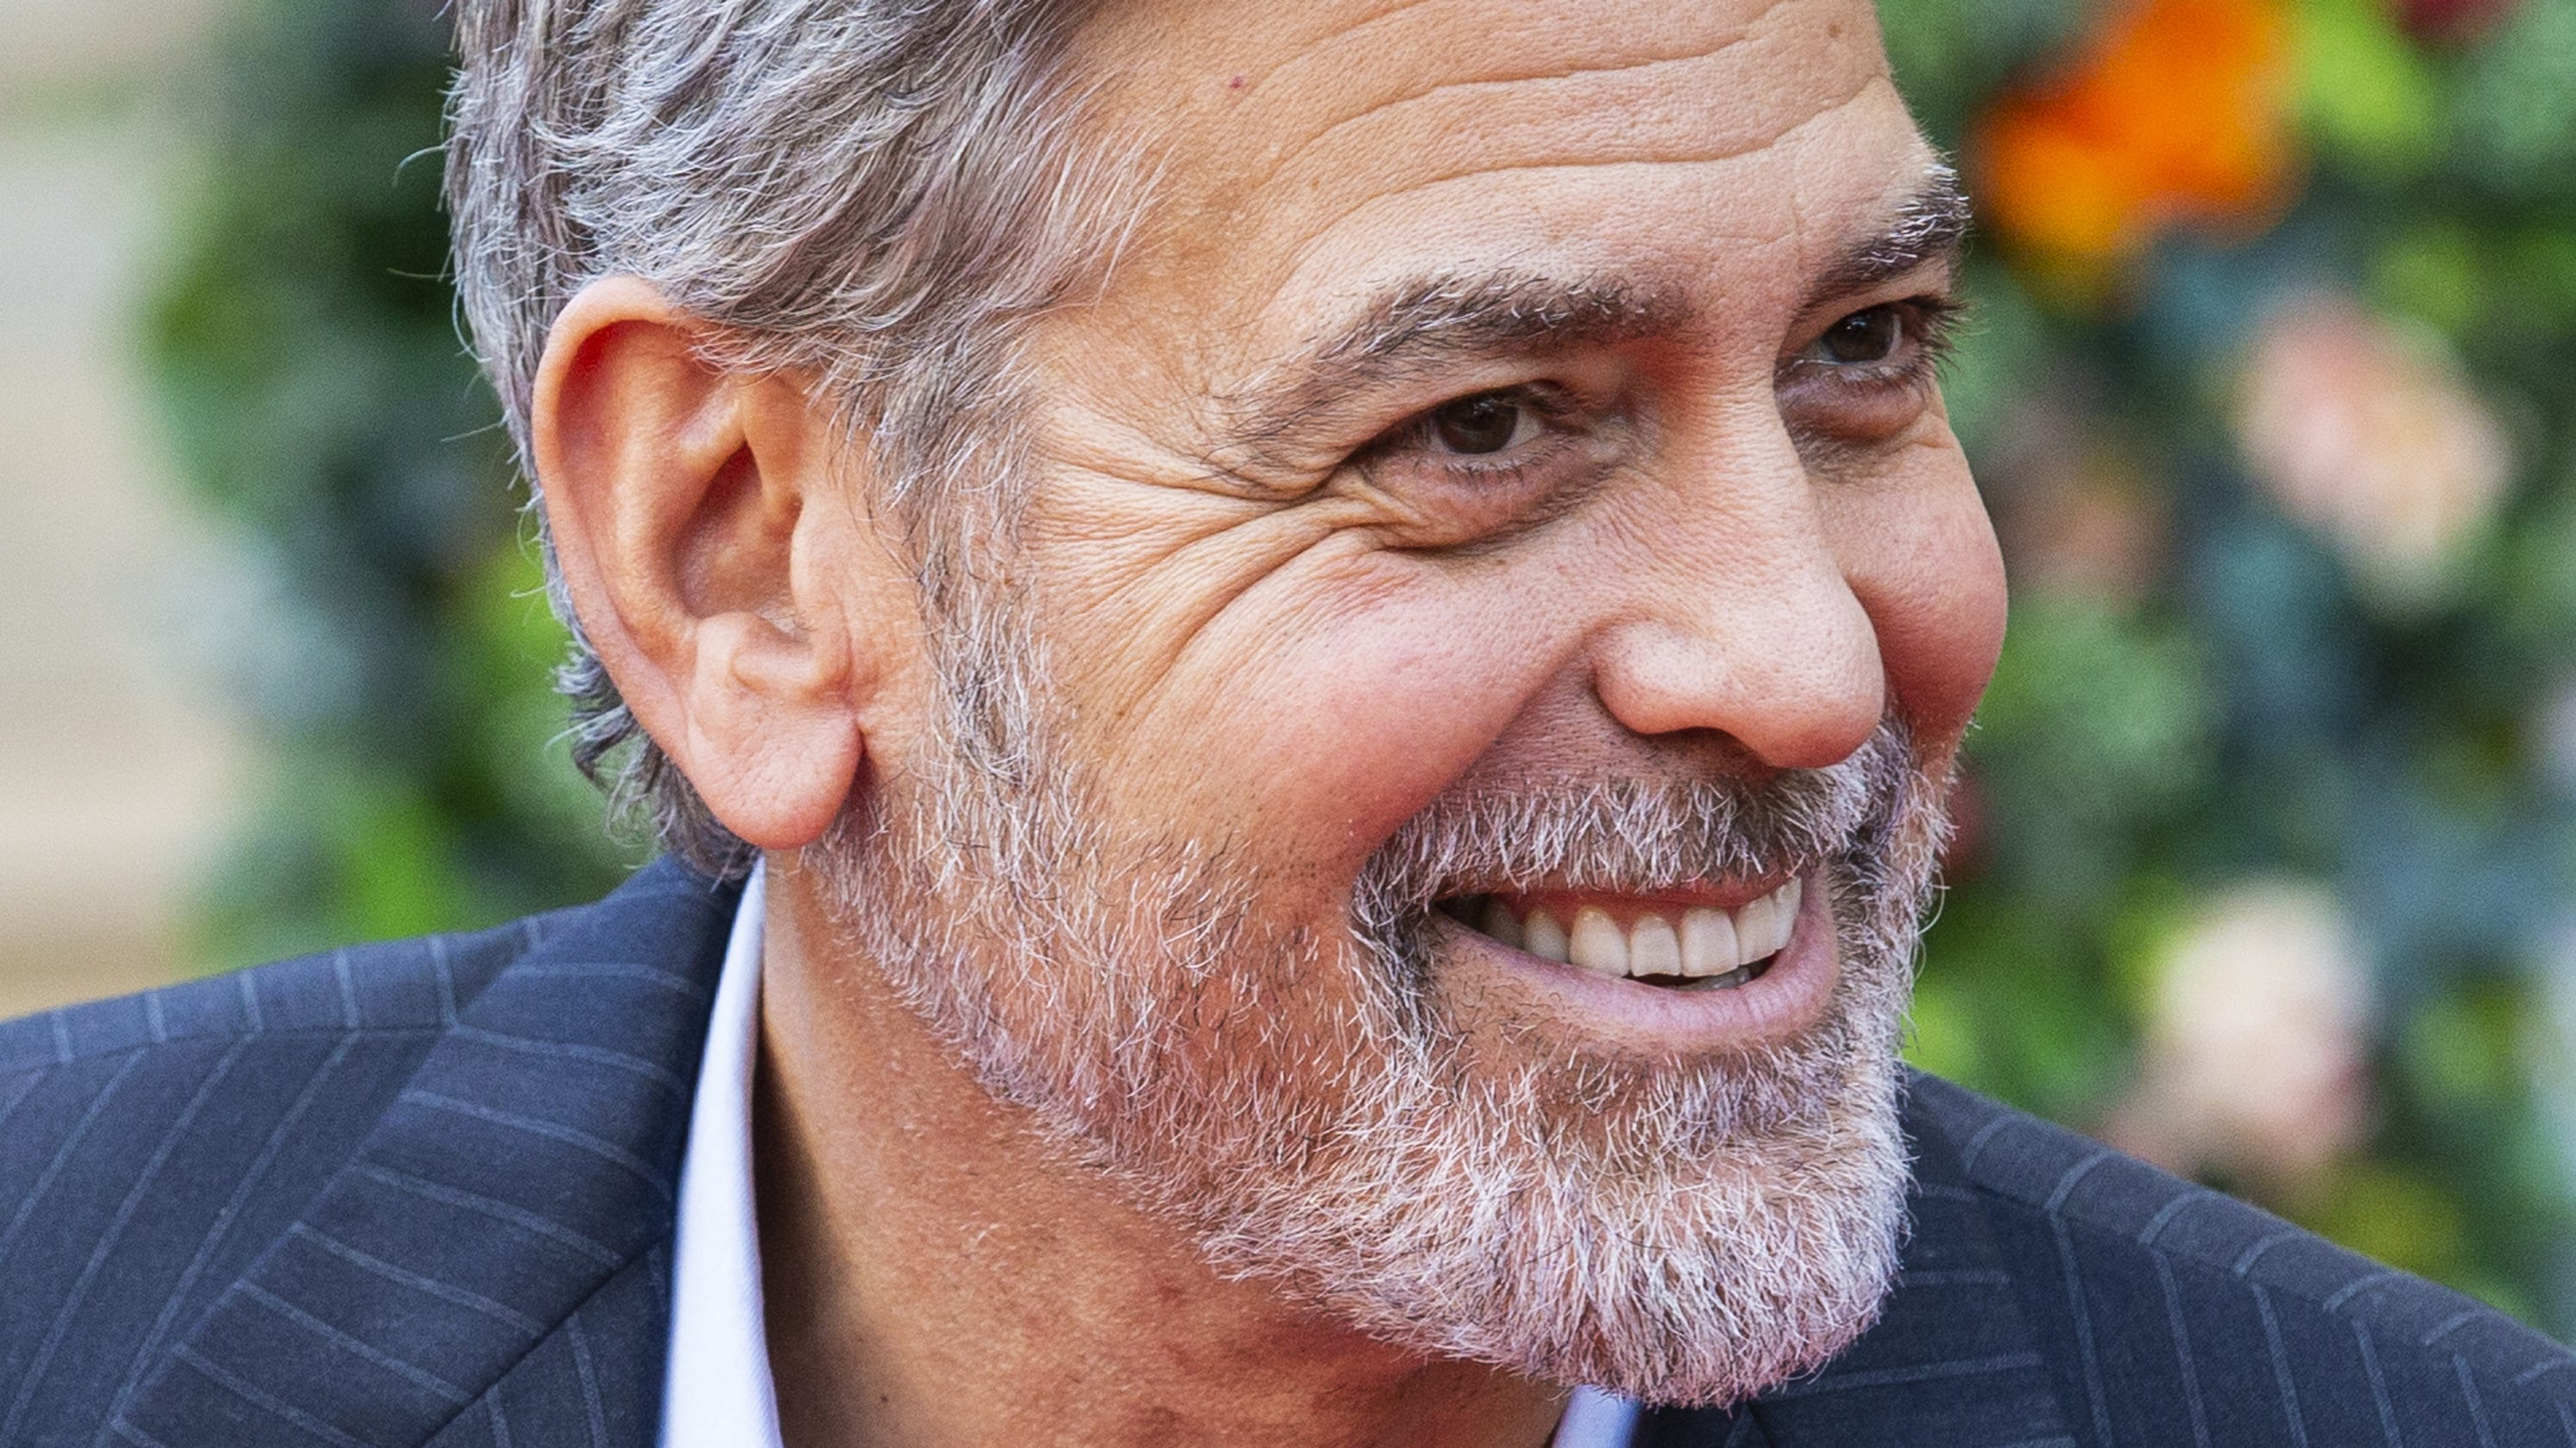 George Clooney opens up in Nashville on Kentucky roots